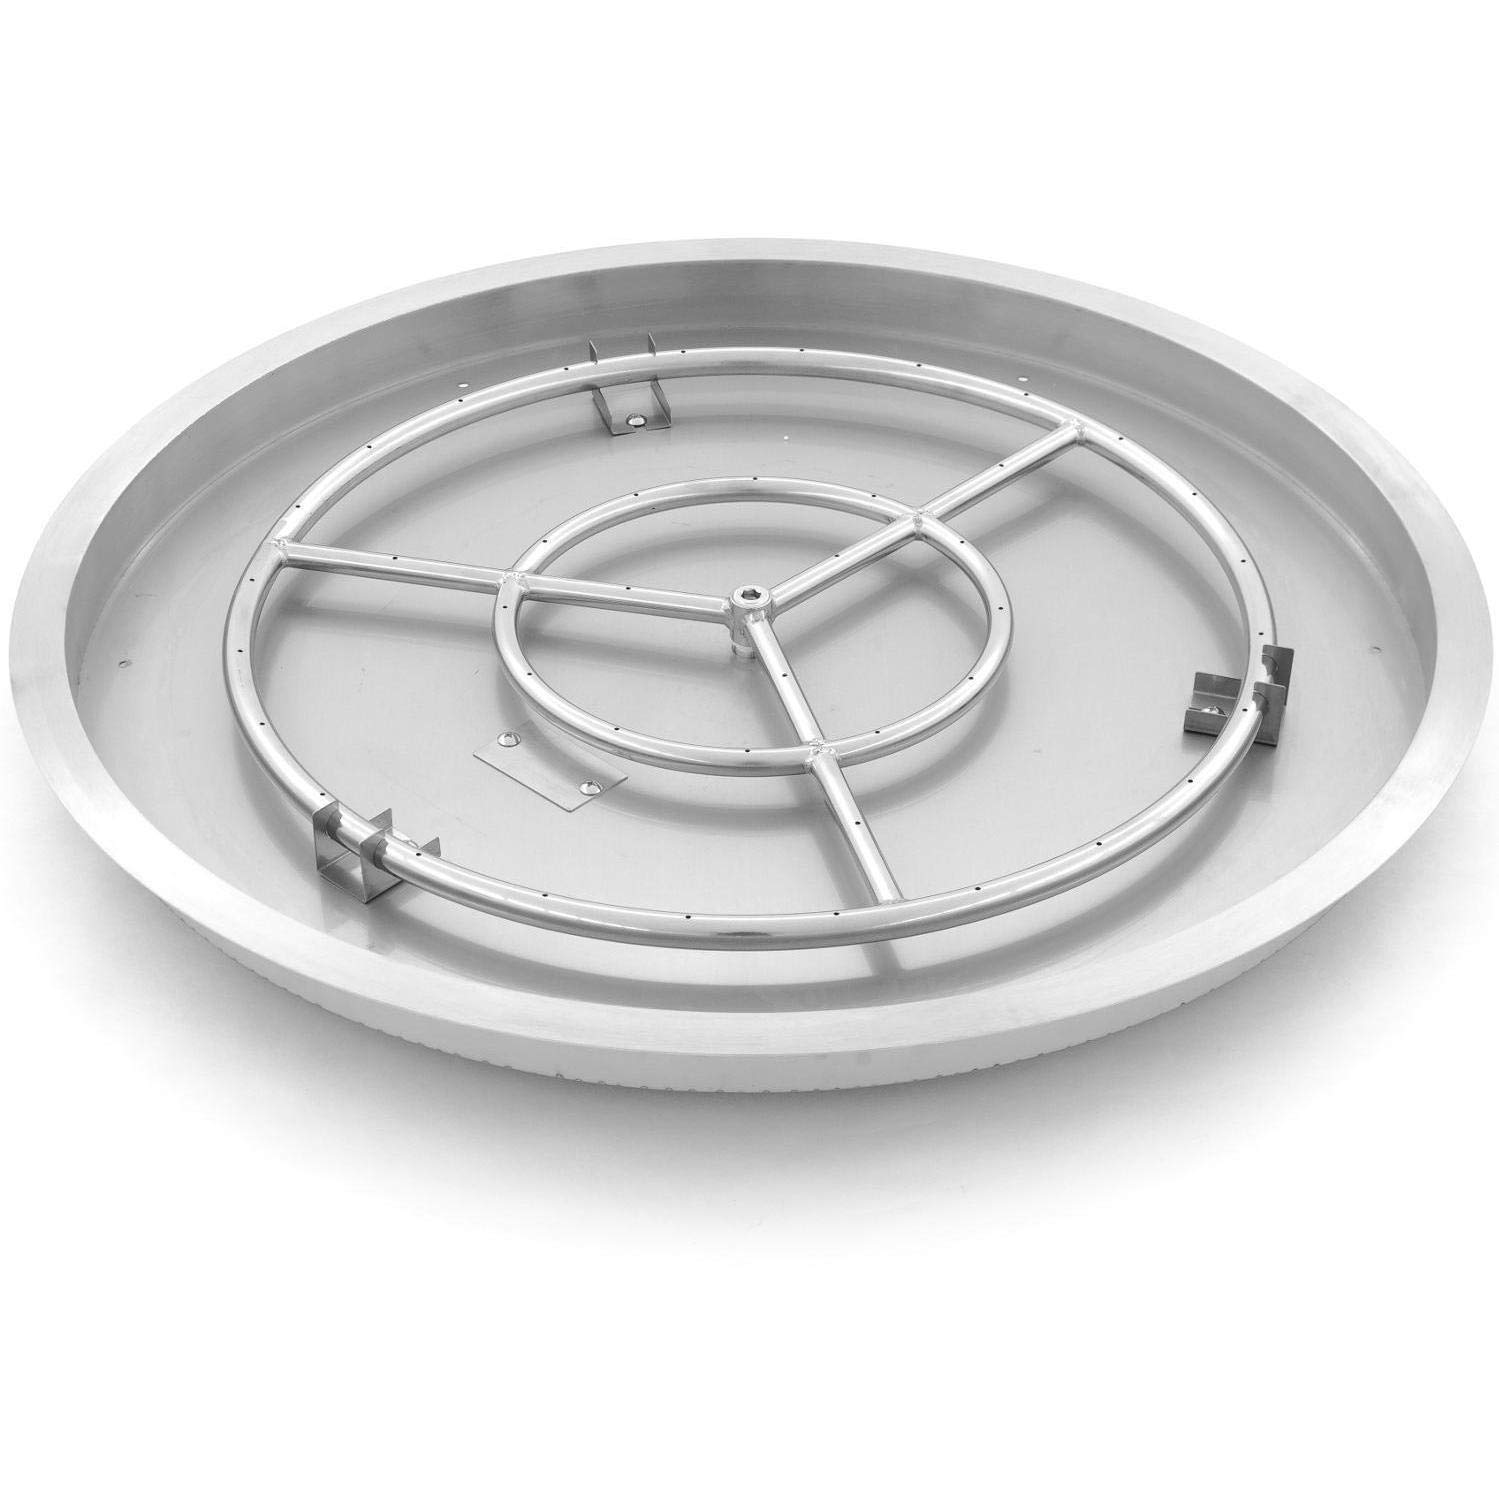 Lakeview Outdoor Designs 31-inch Round Drop-in Pan with 24-inch Natural Gas Ring Burner